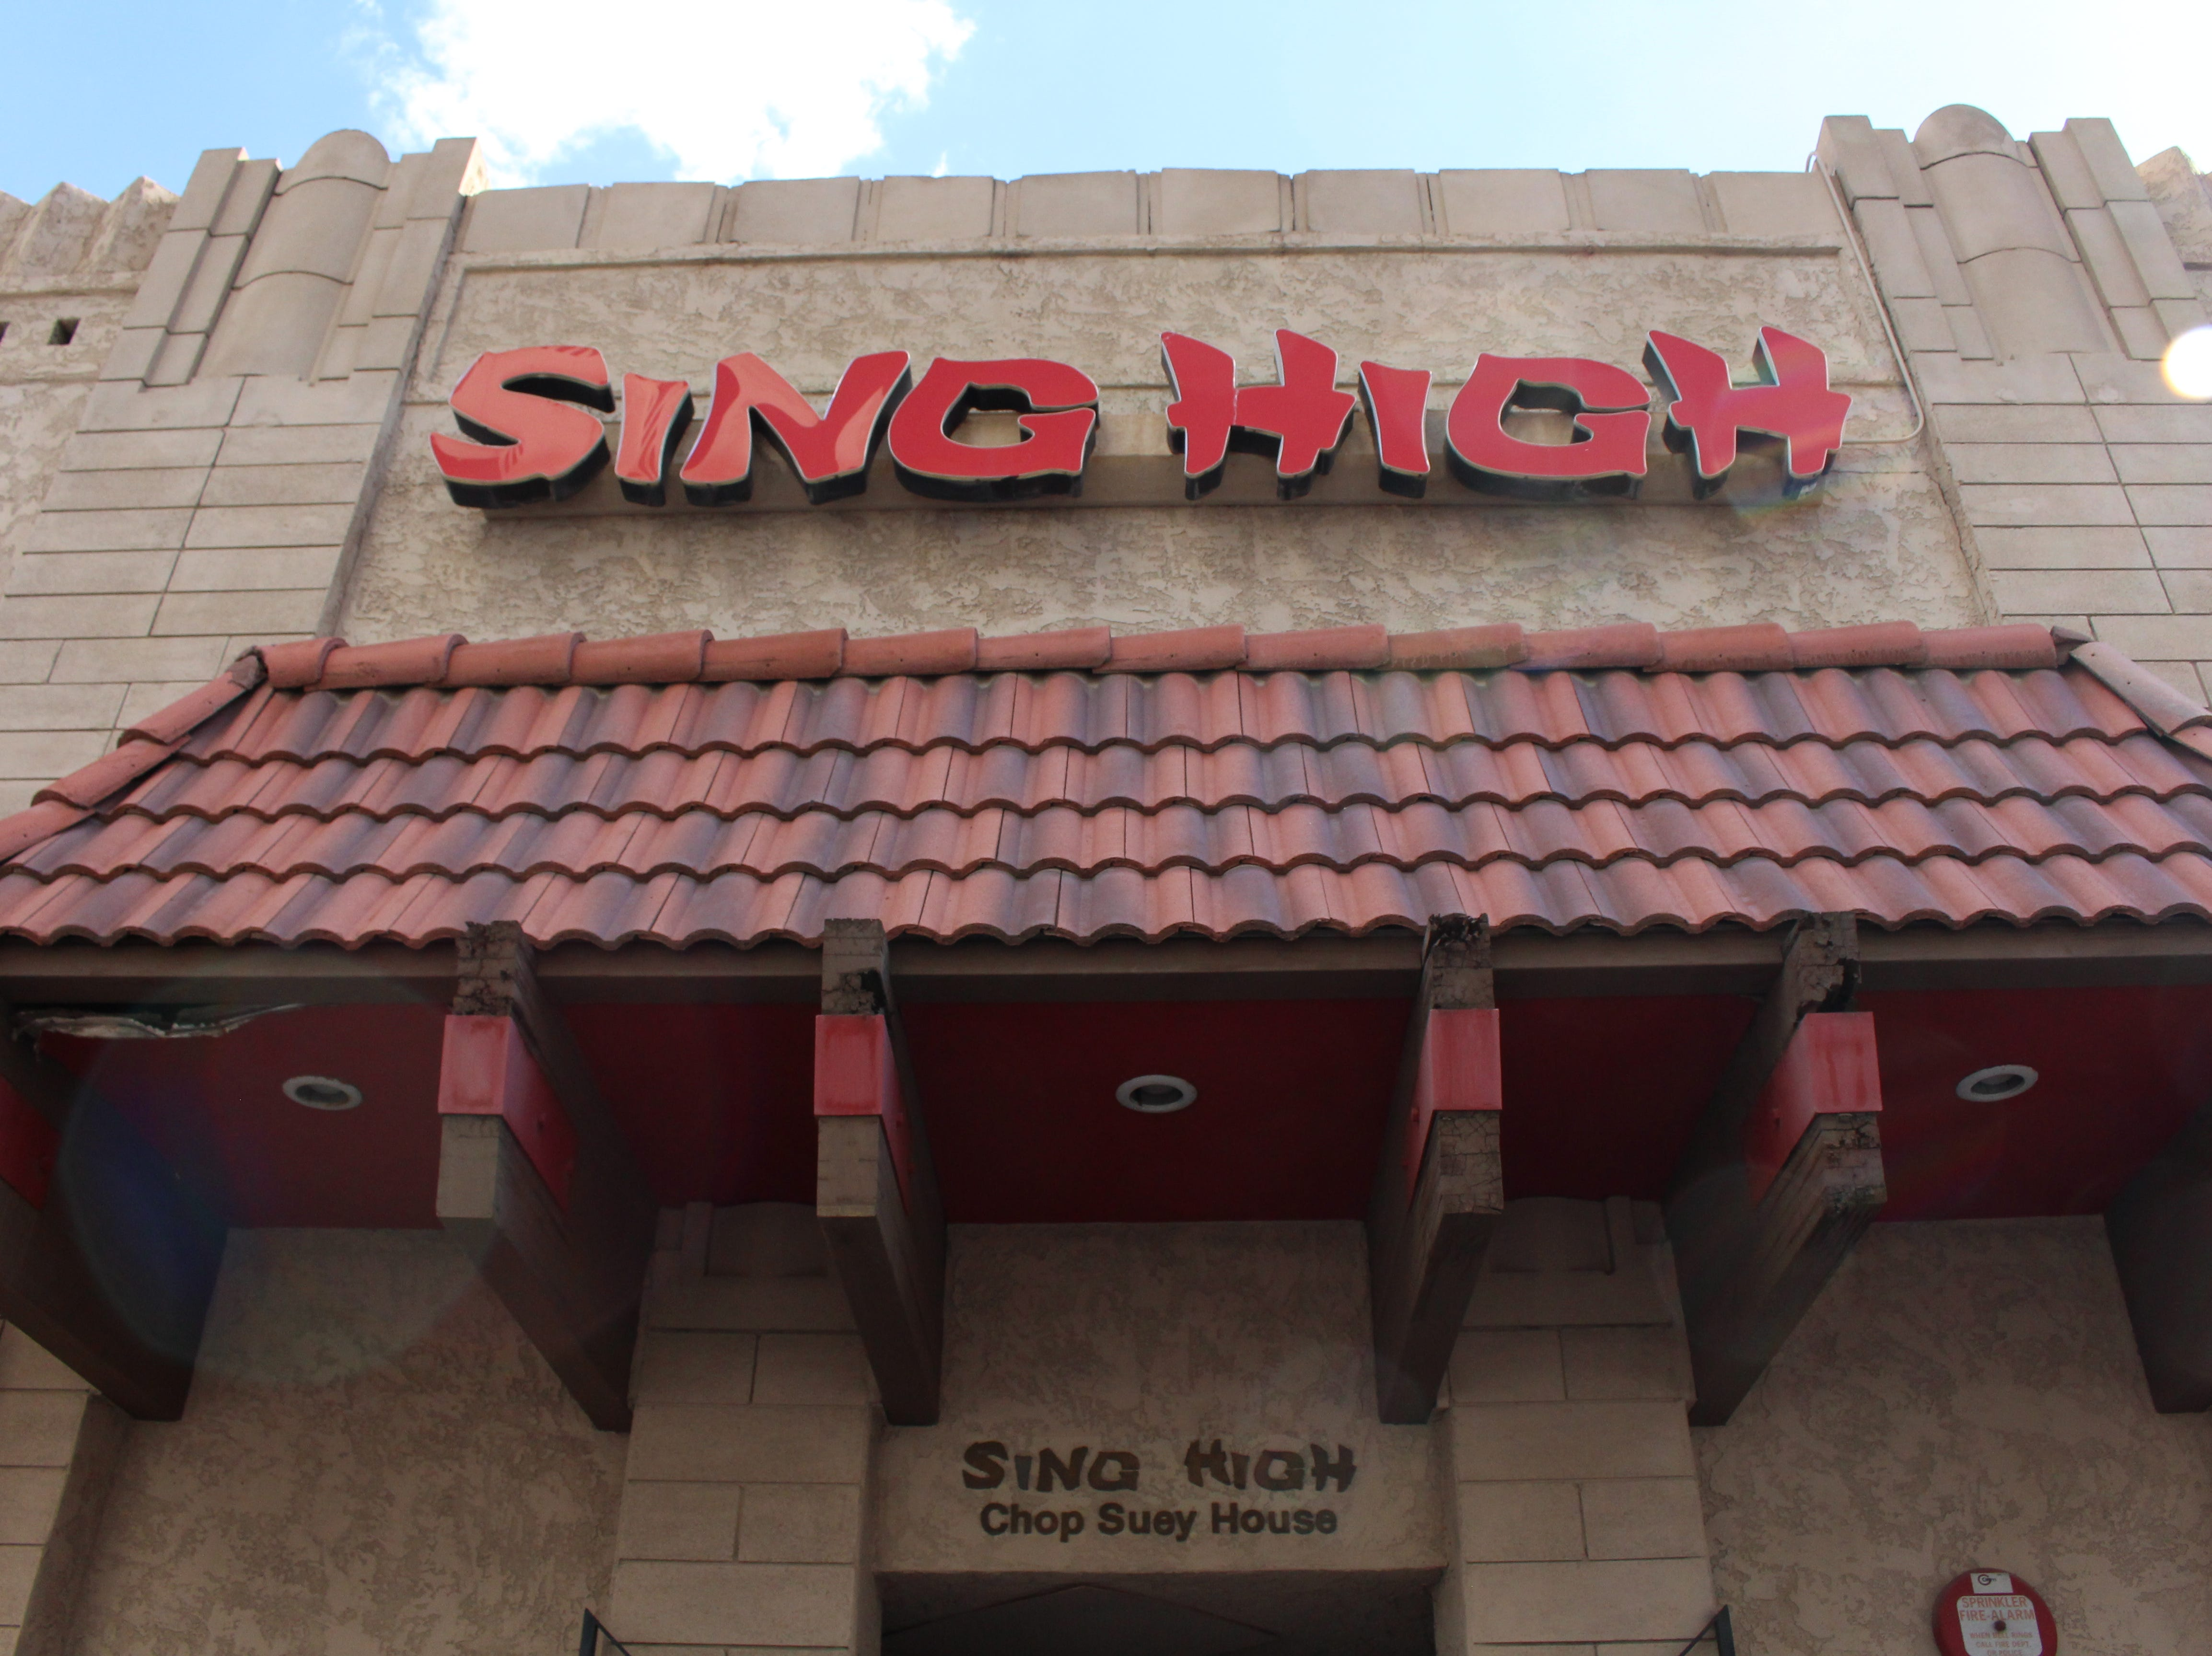 The exterior of Sing High Chop Suey House restaurant in Phoenix.